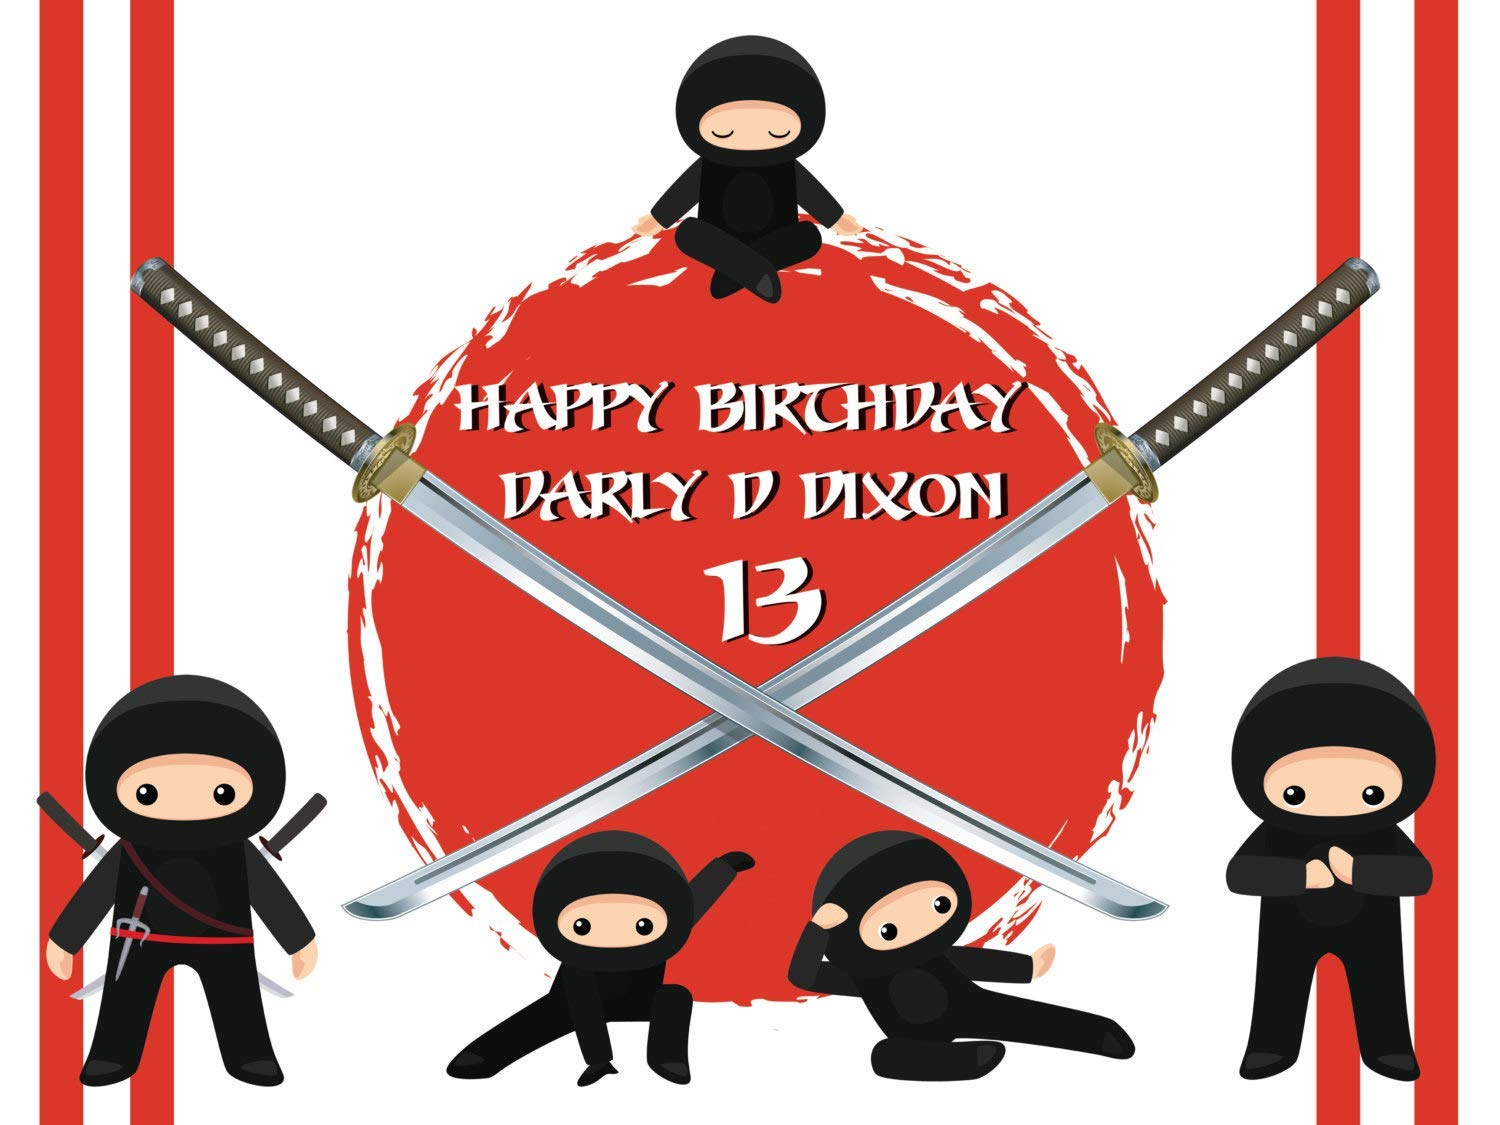 Custom Home Decor Five Ninjas and Swords Birthday Poster for Kids and Adults, Personalized Ninja Warriors Birthday Banner Wall Décor, Handmade Party ...